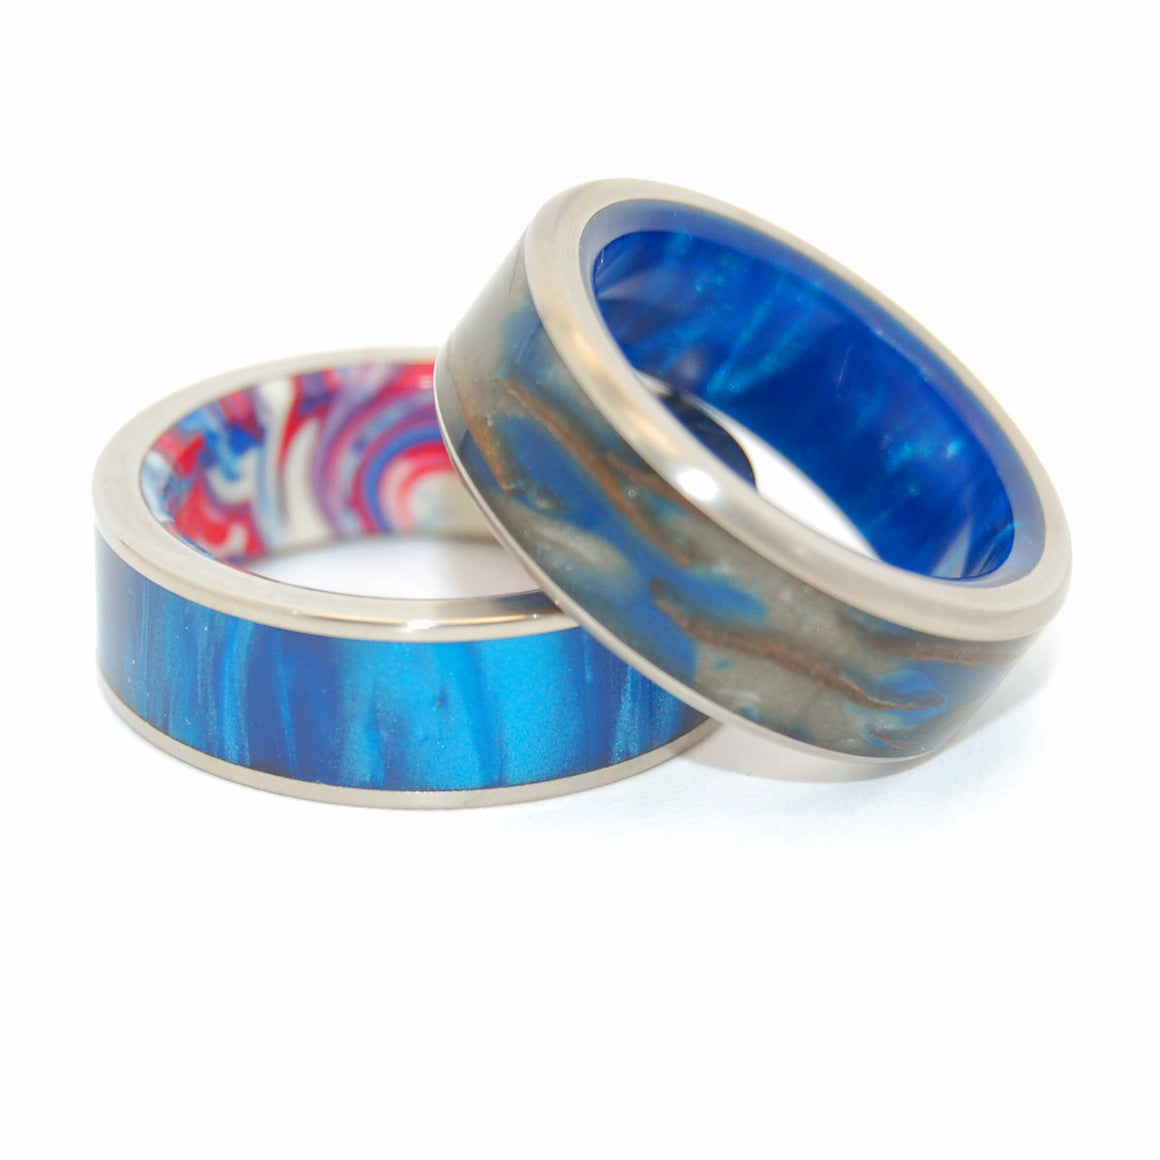 GALACTIC LOVE | Pine Cone Wood resin & Blue Marbled Opalescent - Unique Wedding Rings Set - Minter and Richter Designs